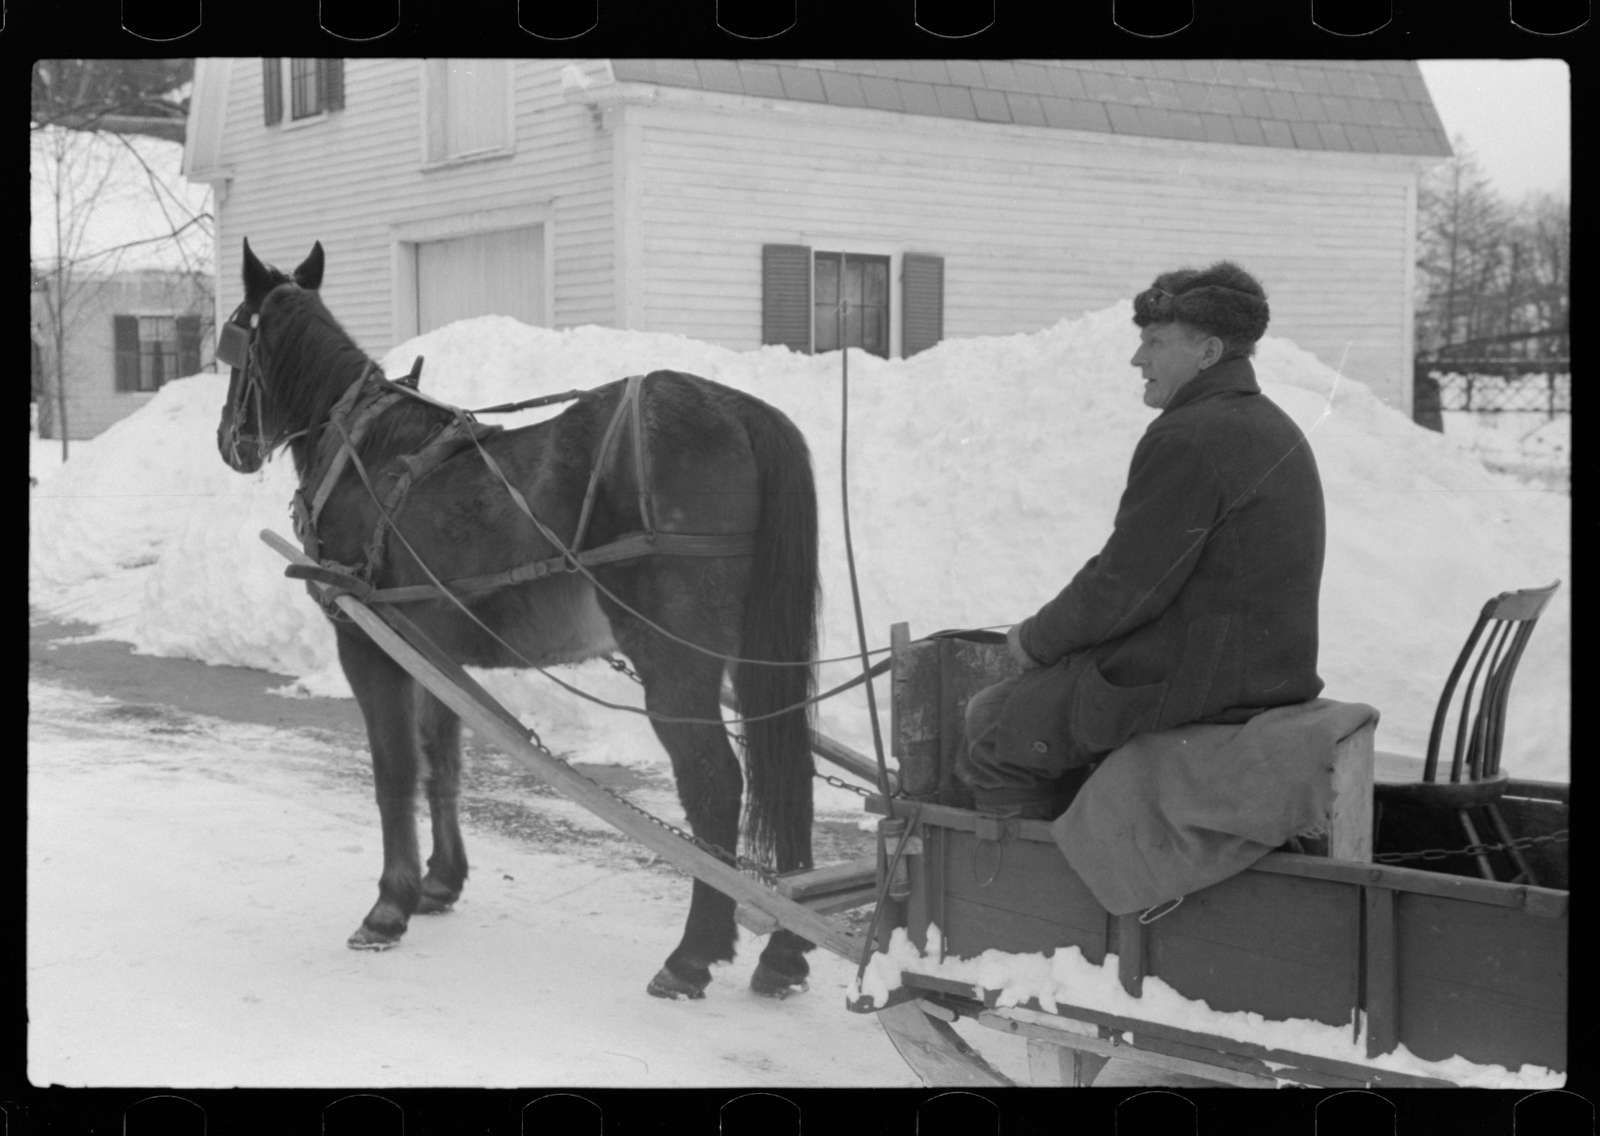 Untitled photo, possibly related to: Mr. G.W. Clarke, who is seventy-one years old and has always lived in Vermont brings his butter to town on Saturday to sell to his customers in Woodstock, Vermont